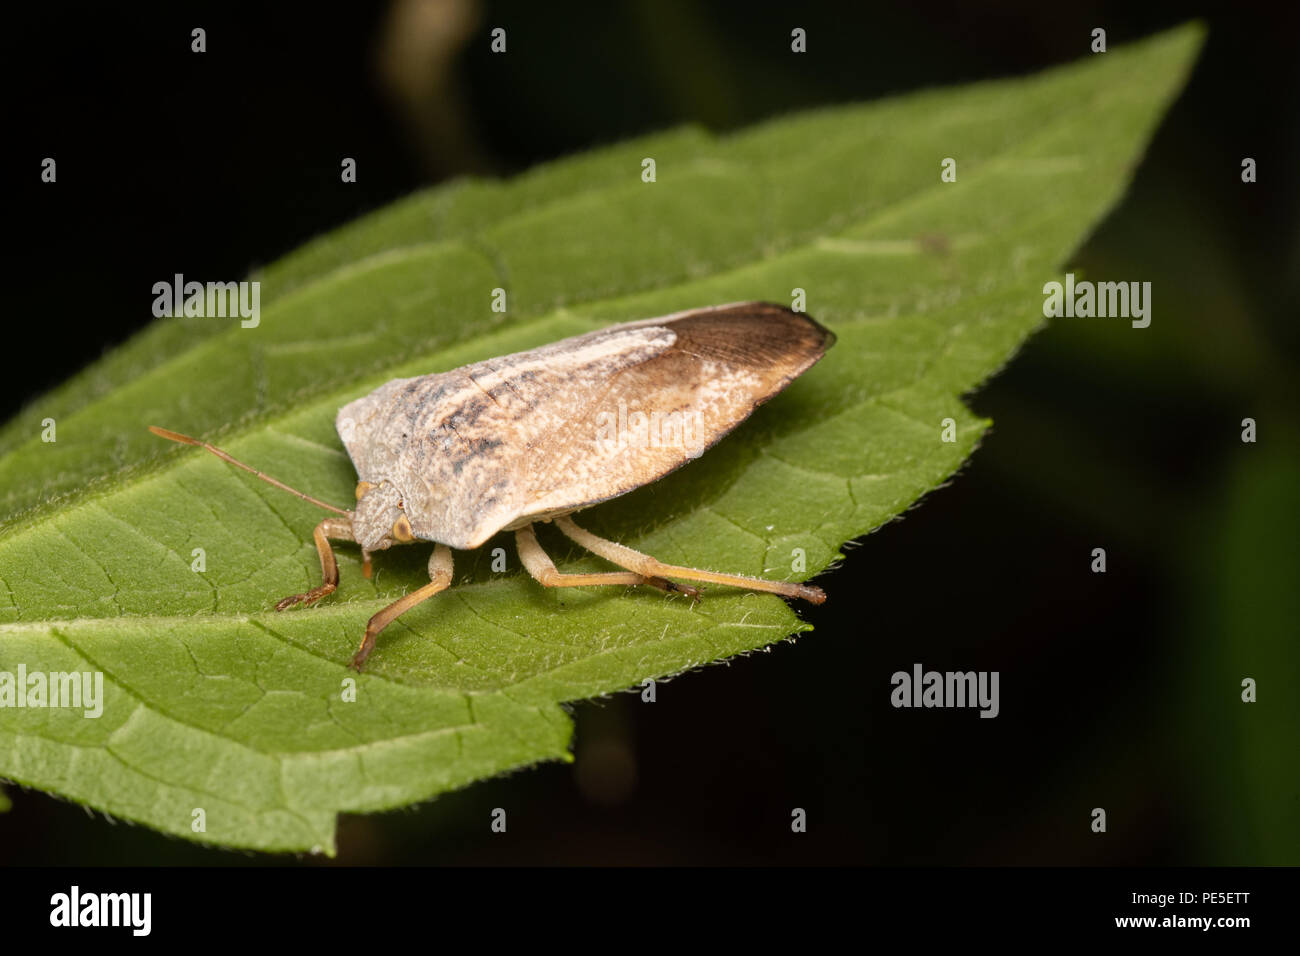 Tessaratomids resemble large stink bugs (family Pentatomidae) and are sometimes quite colorful. - Stock Image